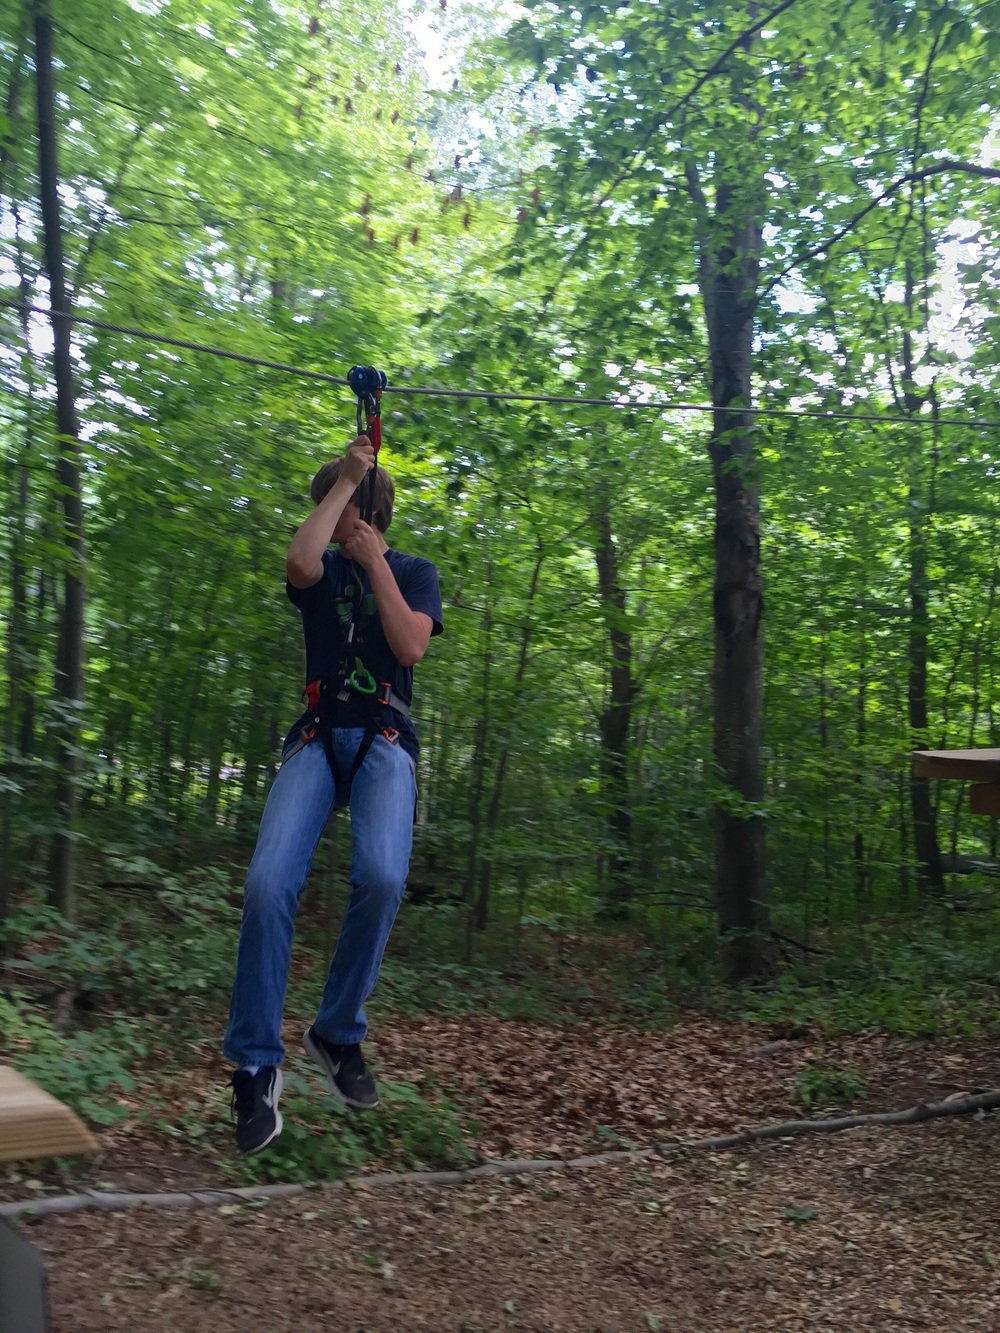 Go Ape Review. The Entertaining House. All images shot with iPhone 6. Christopher on the Level 1 zip line.